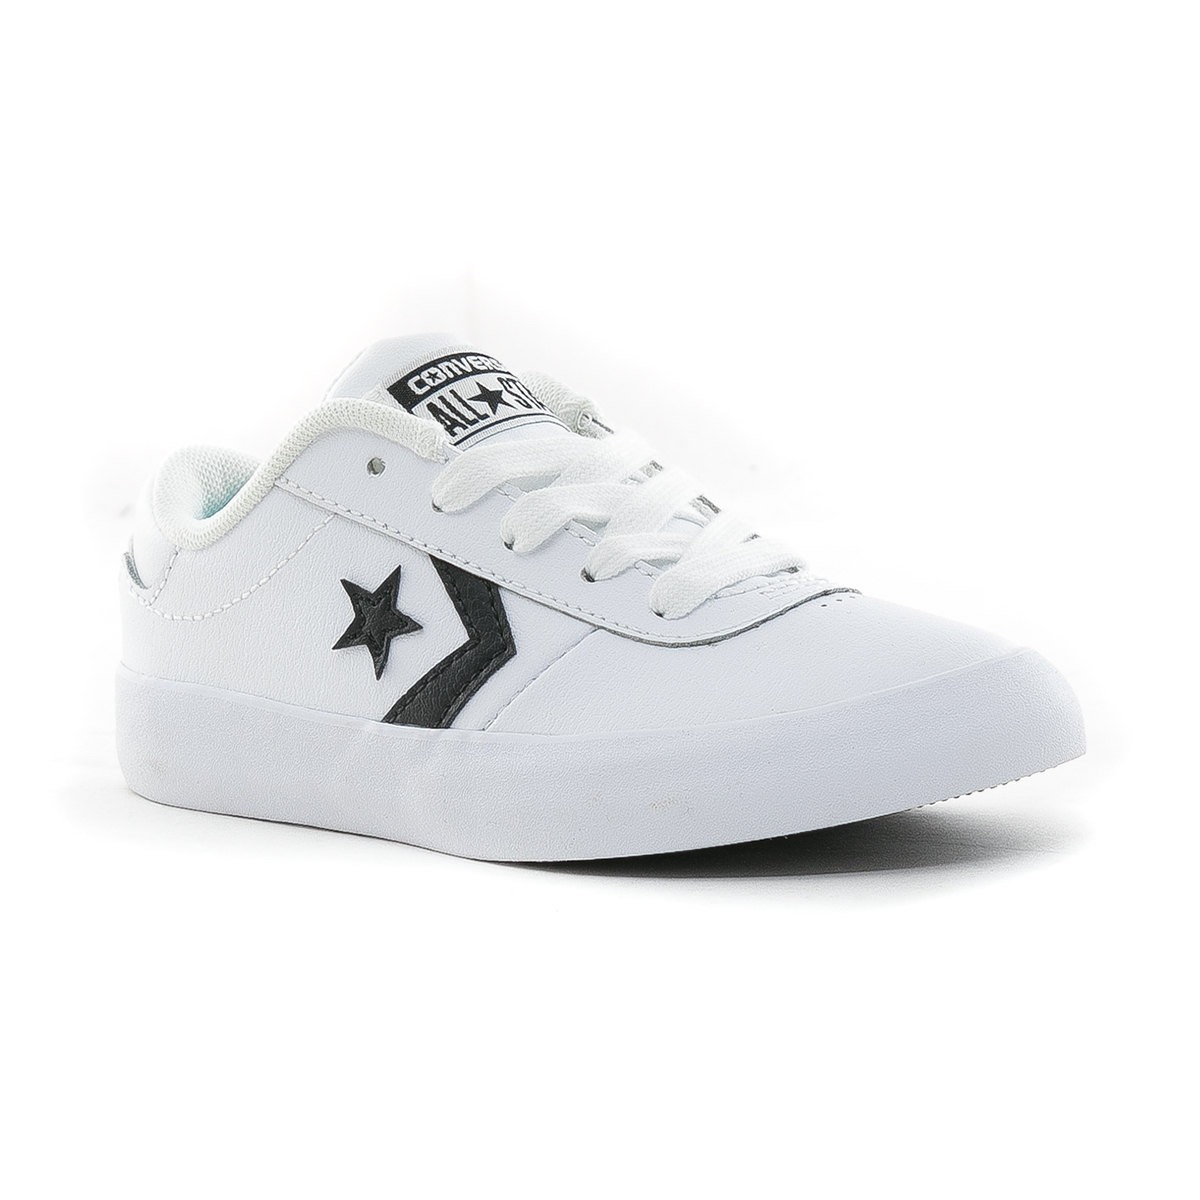 648b6ec18d252 ... switzerland zapatillas point star ox blanco converse. cargando zoom.  d9f1a a6ead